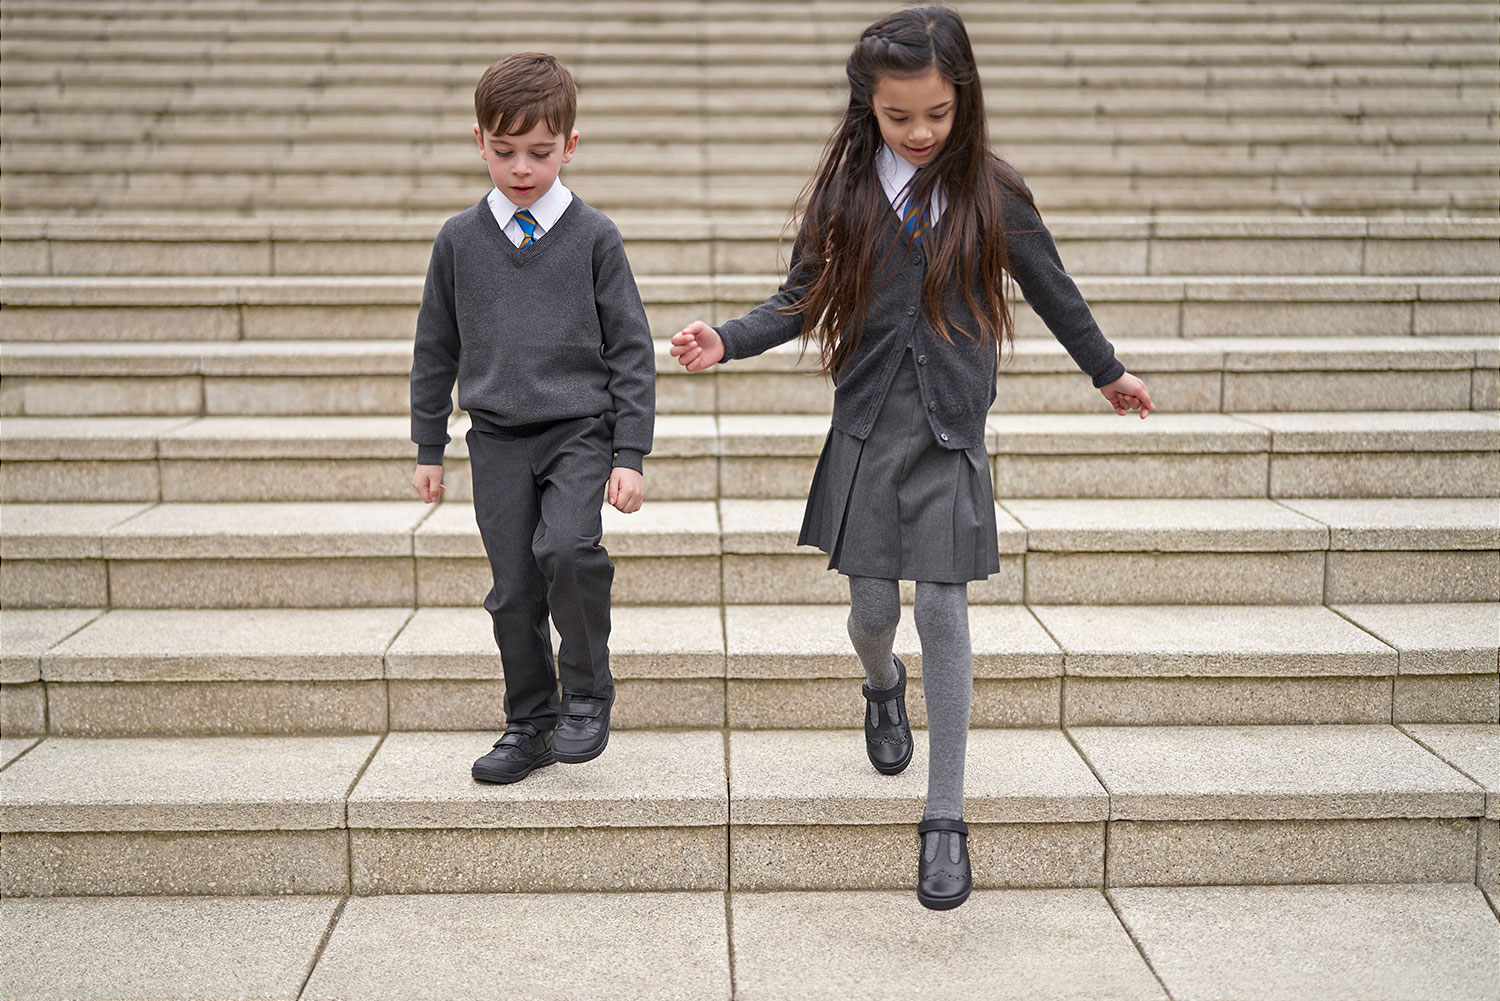 Schoolgirl and Schoolboy on Steps